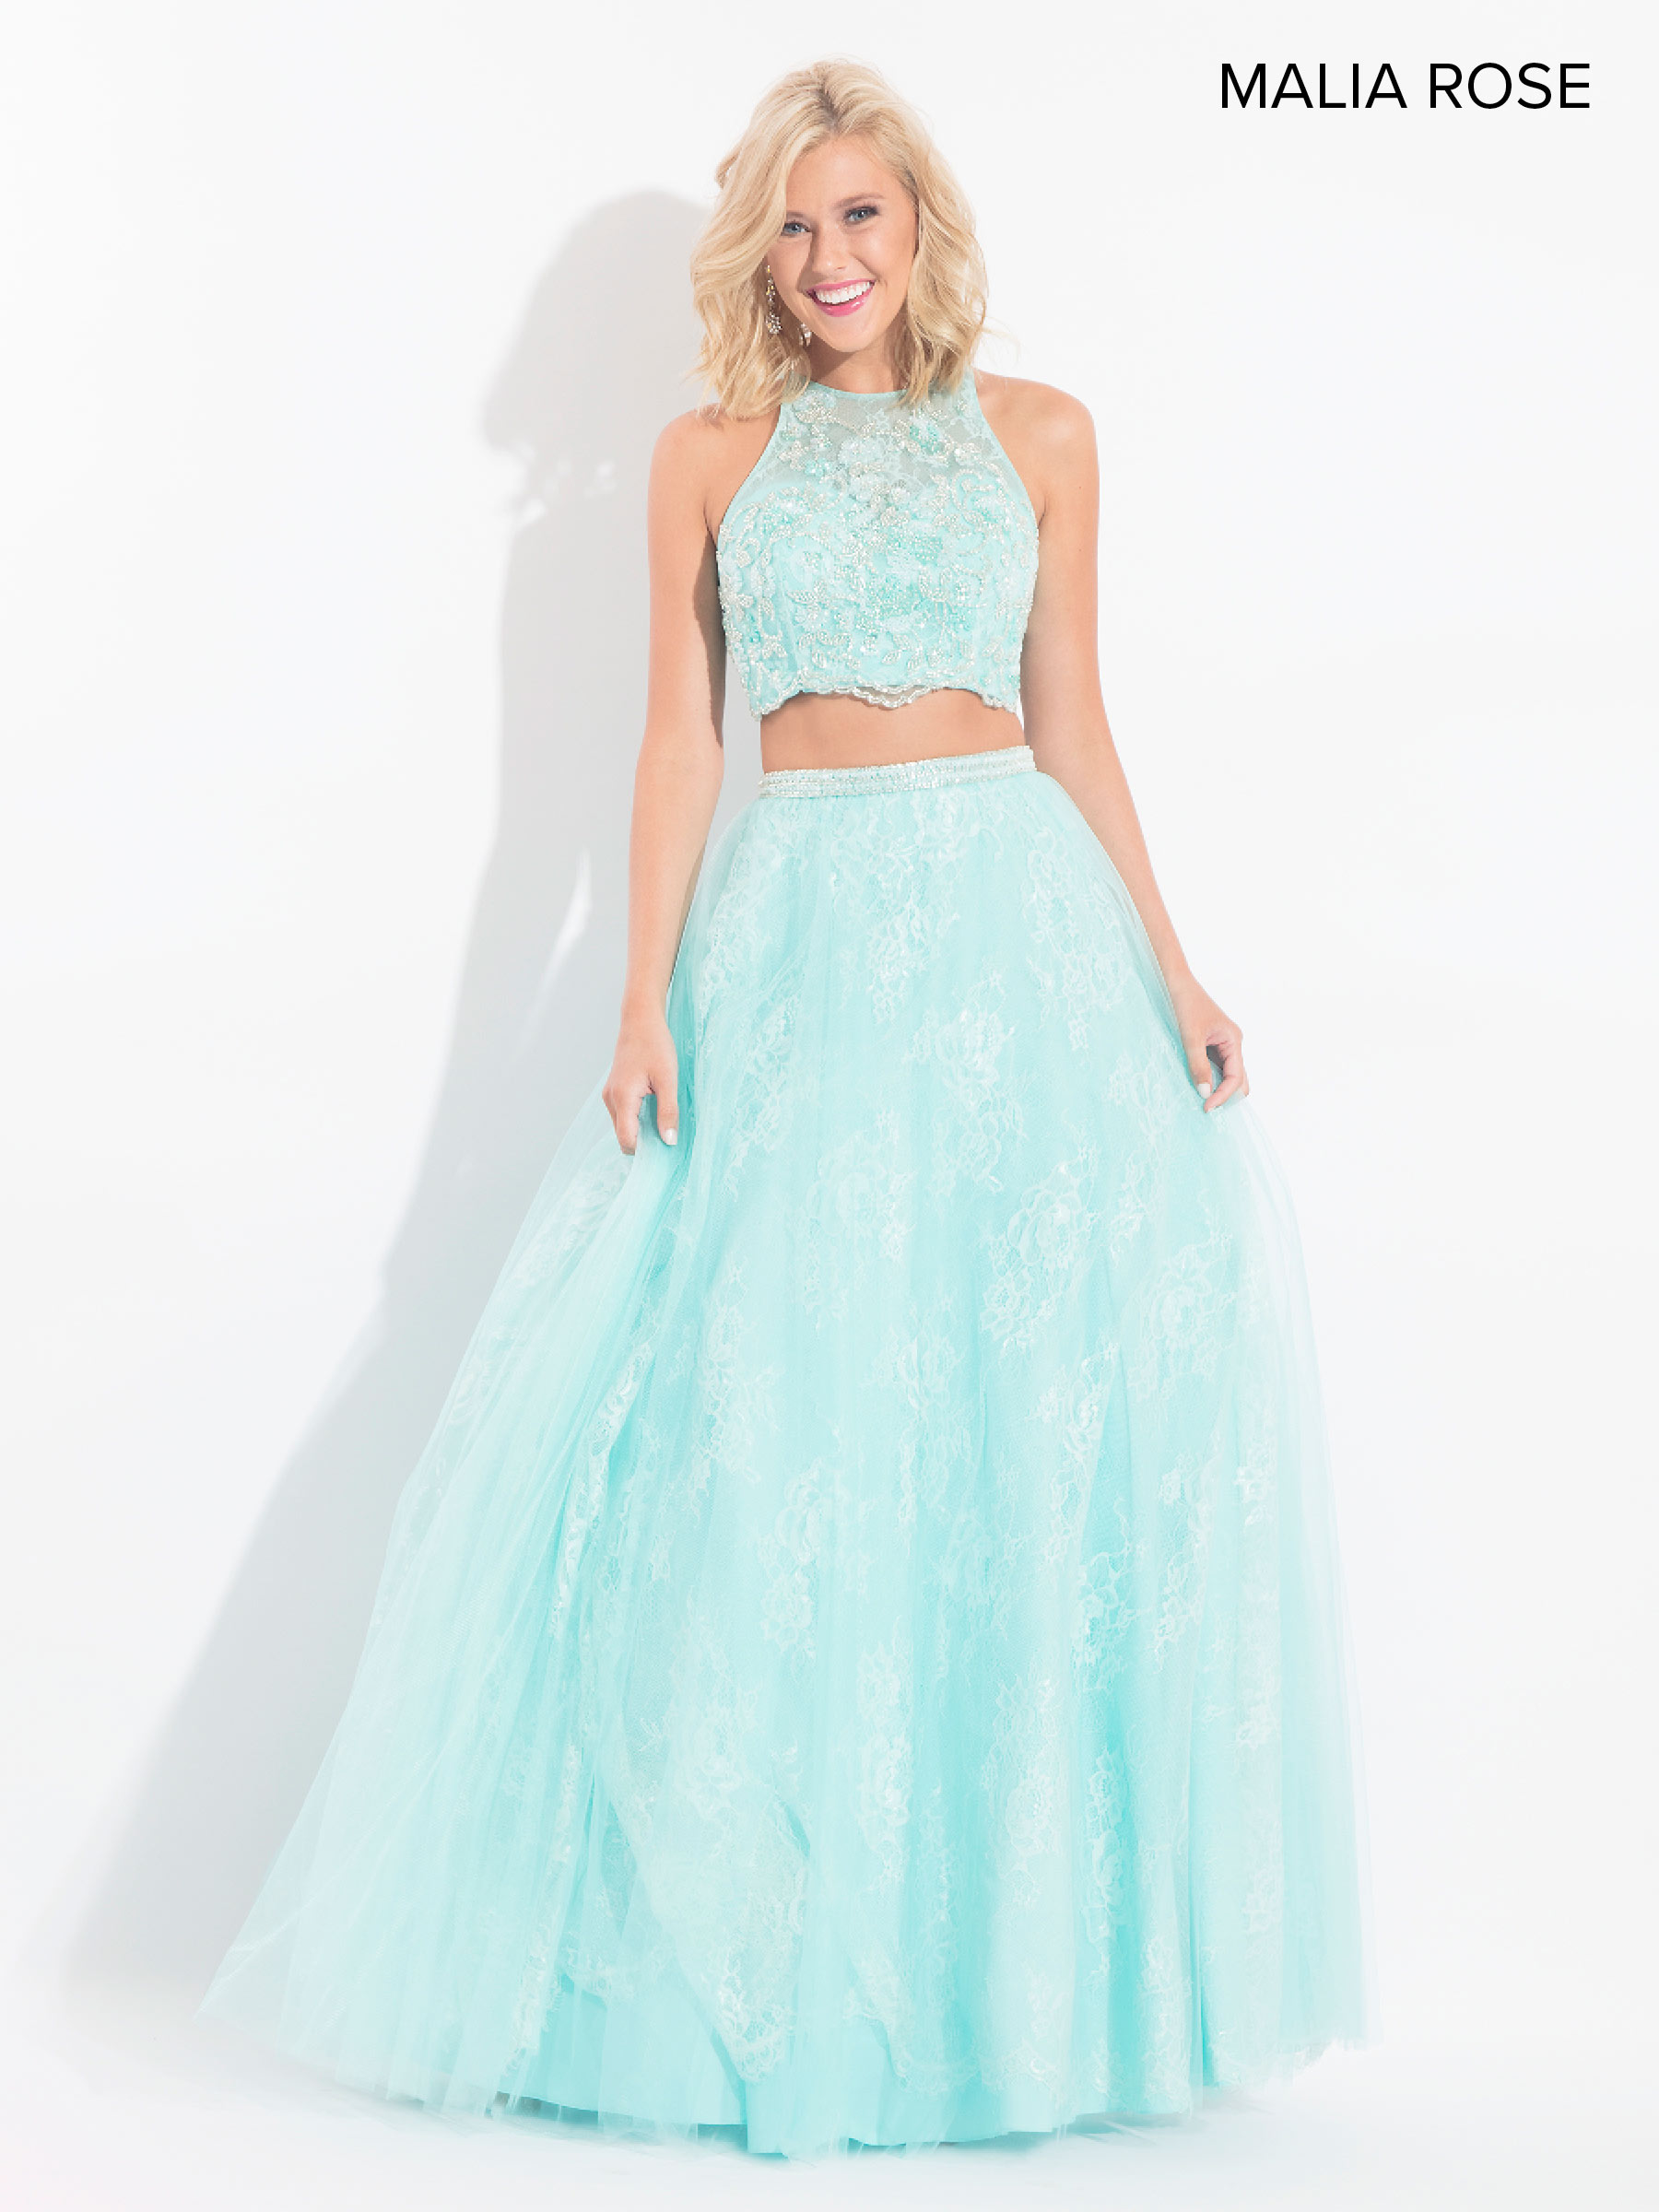 Malia Rose Prom Dresses | Style - MP1014 in Mint or Blush Color